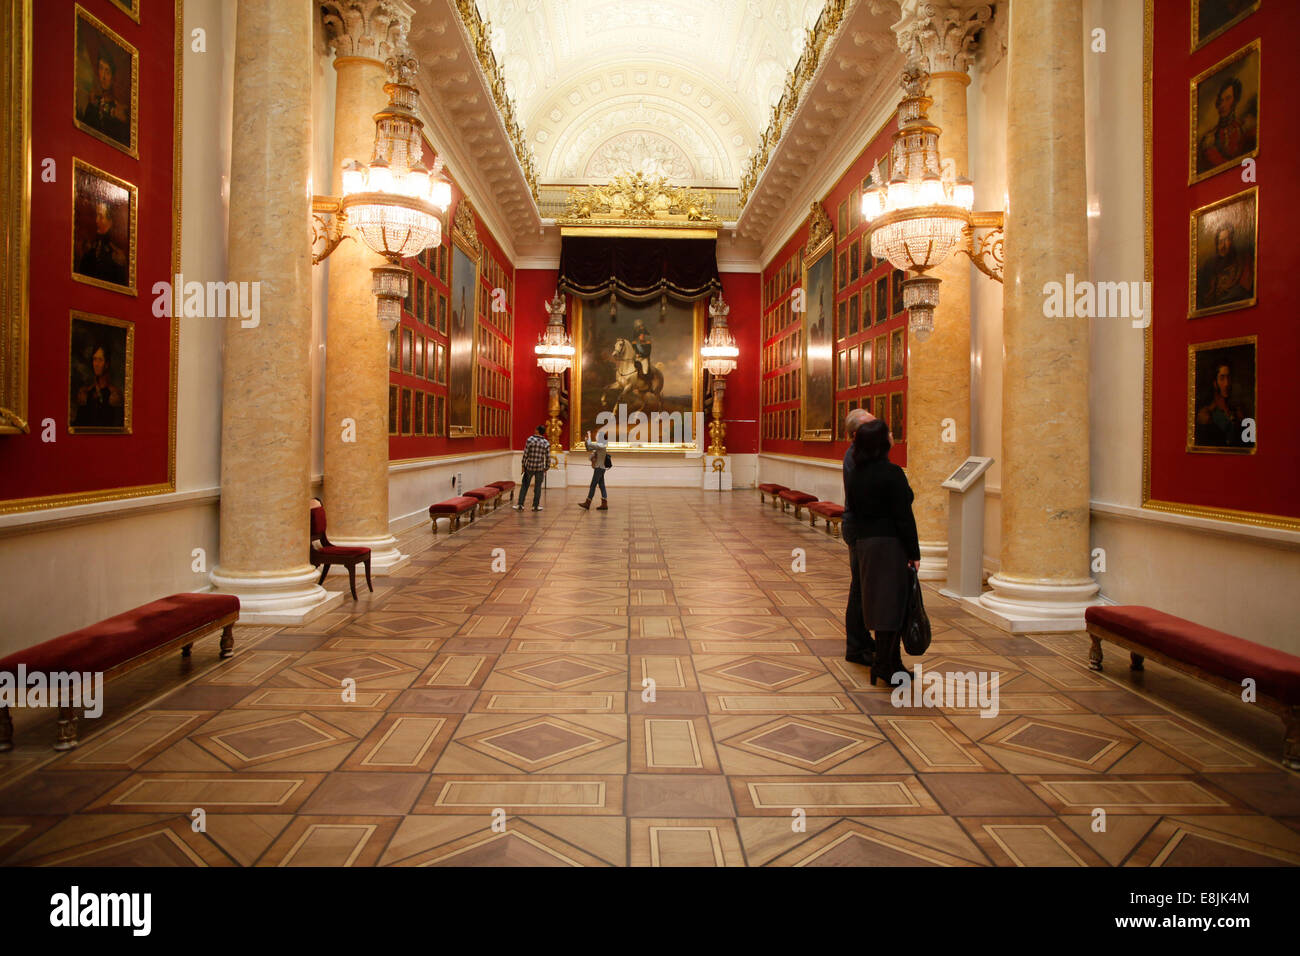 Hermitage Museum. The Gallery of the Patriotic War of 1812. - Stock Image